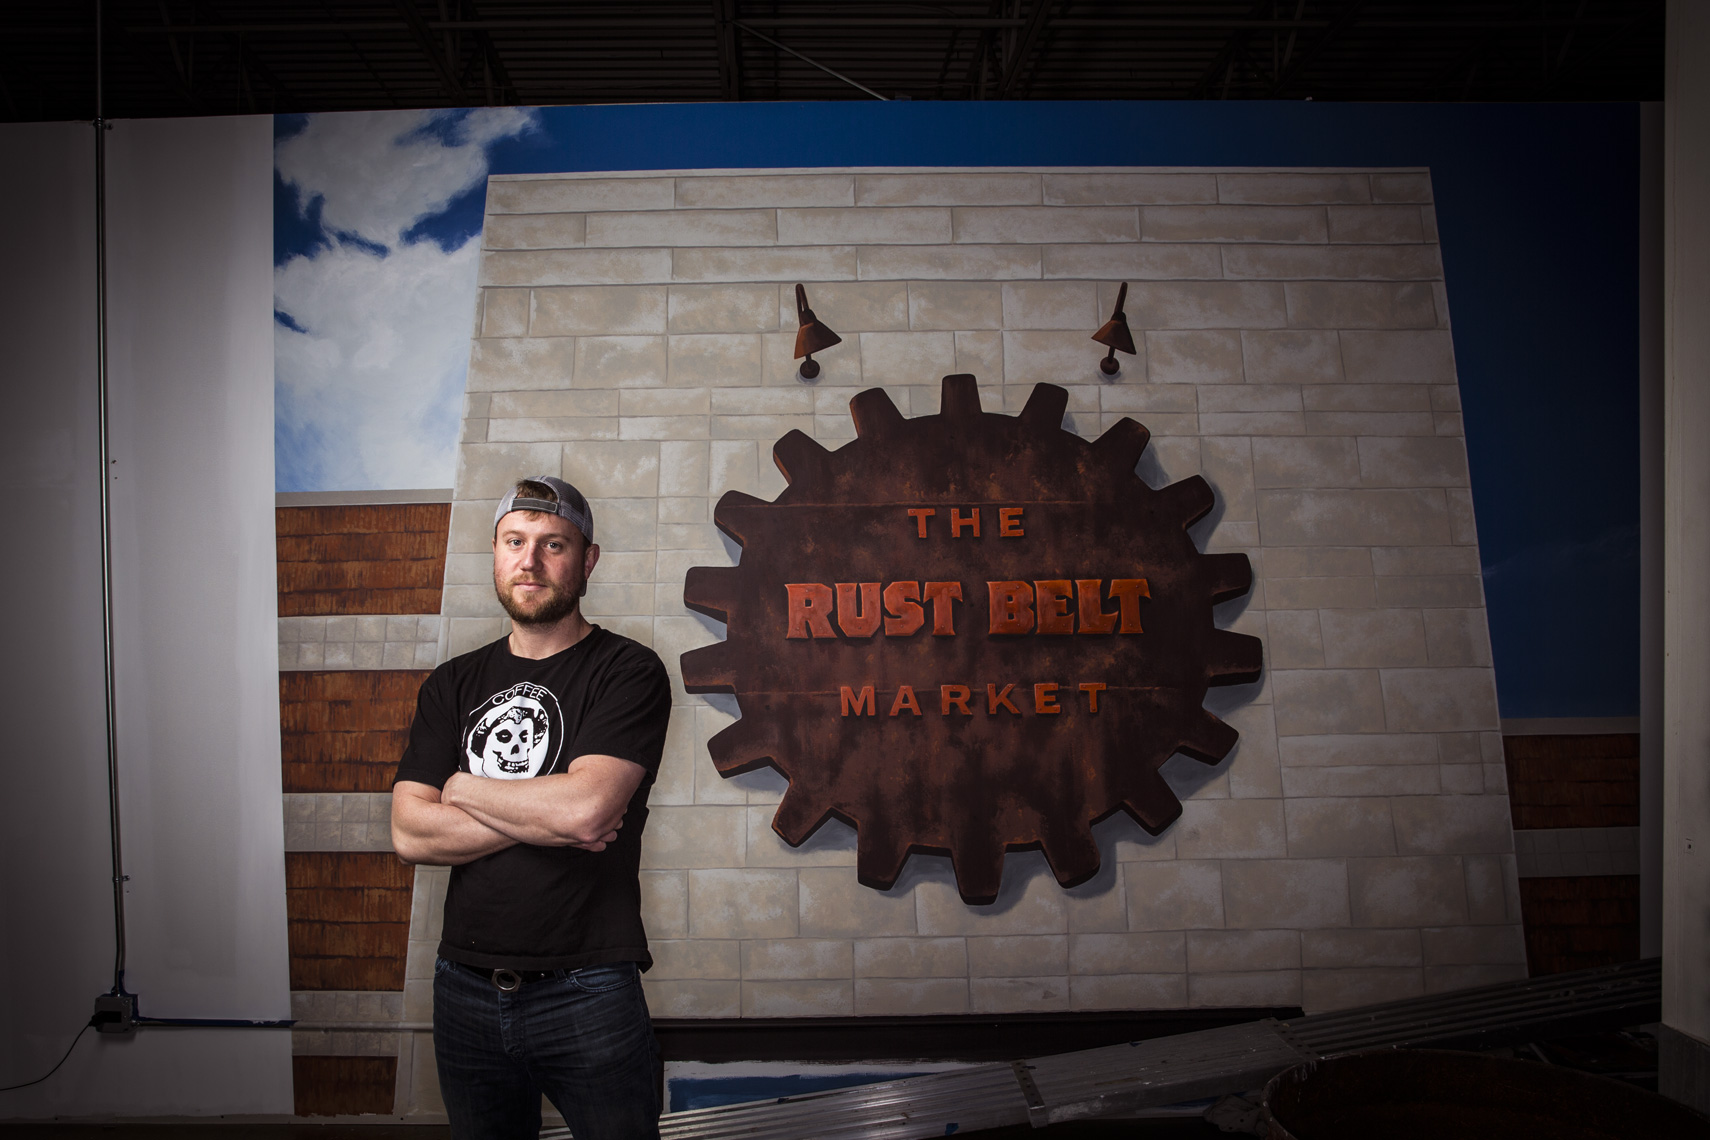 Chris Best-Rustbelt Market